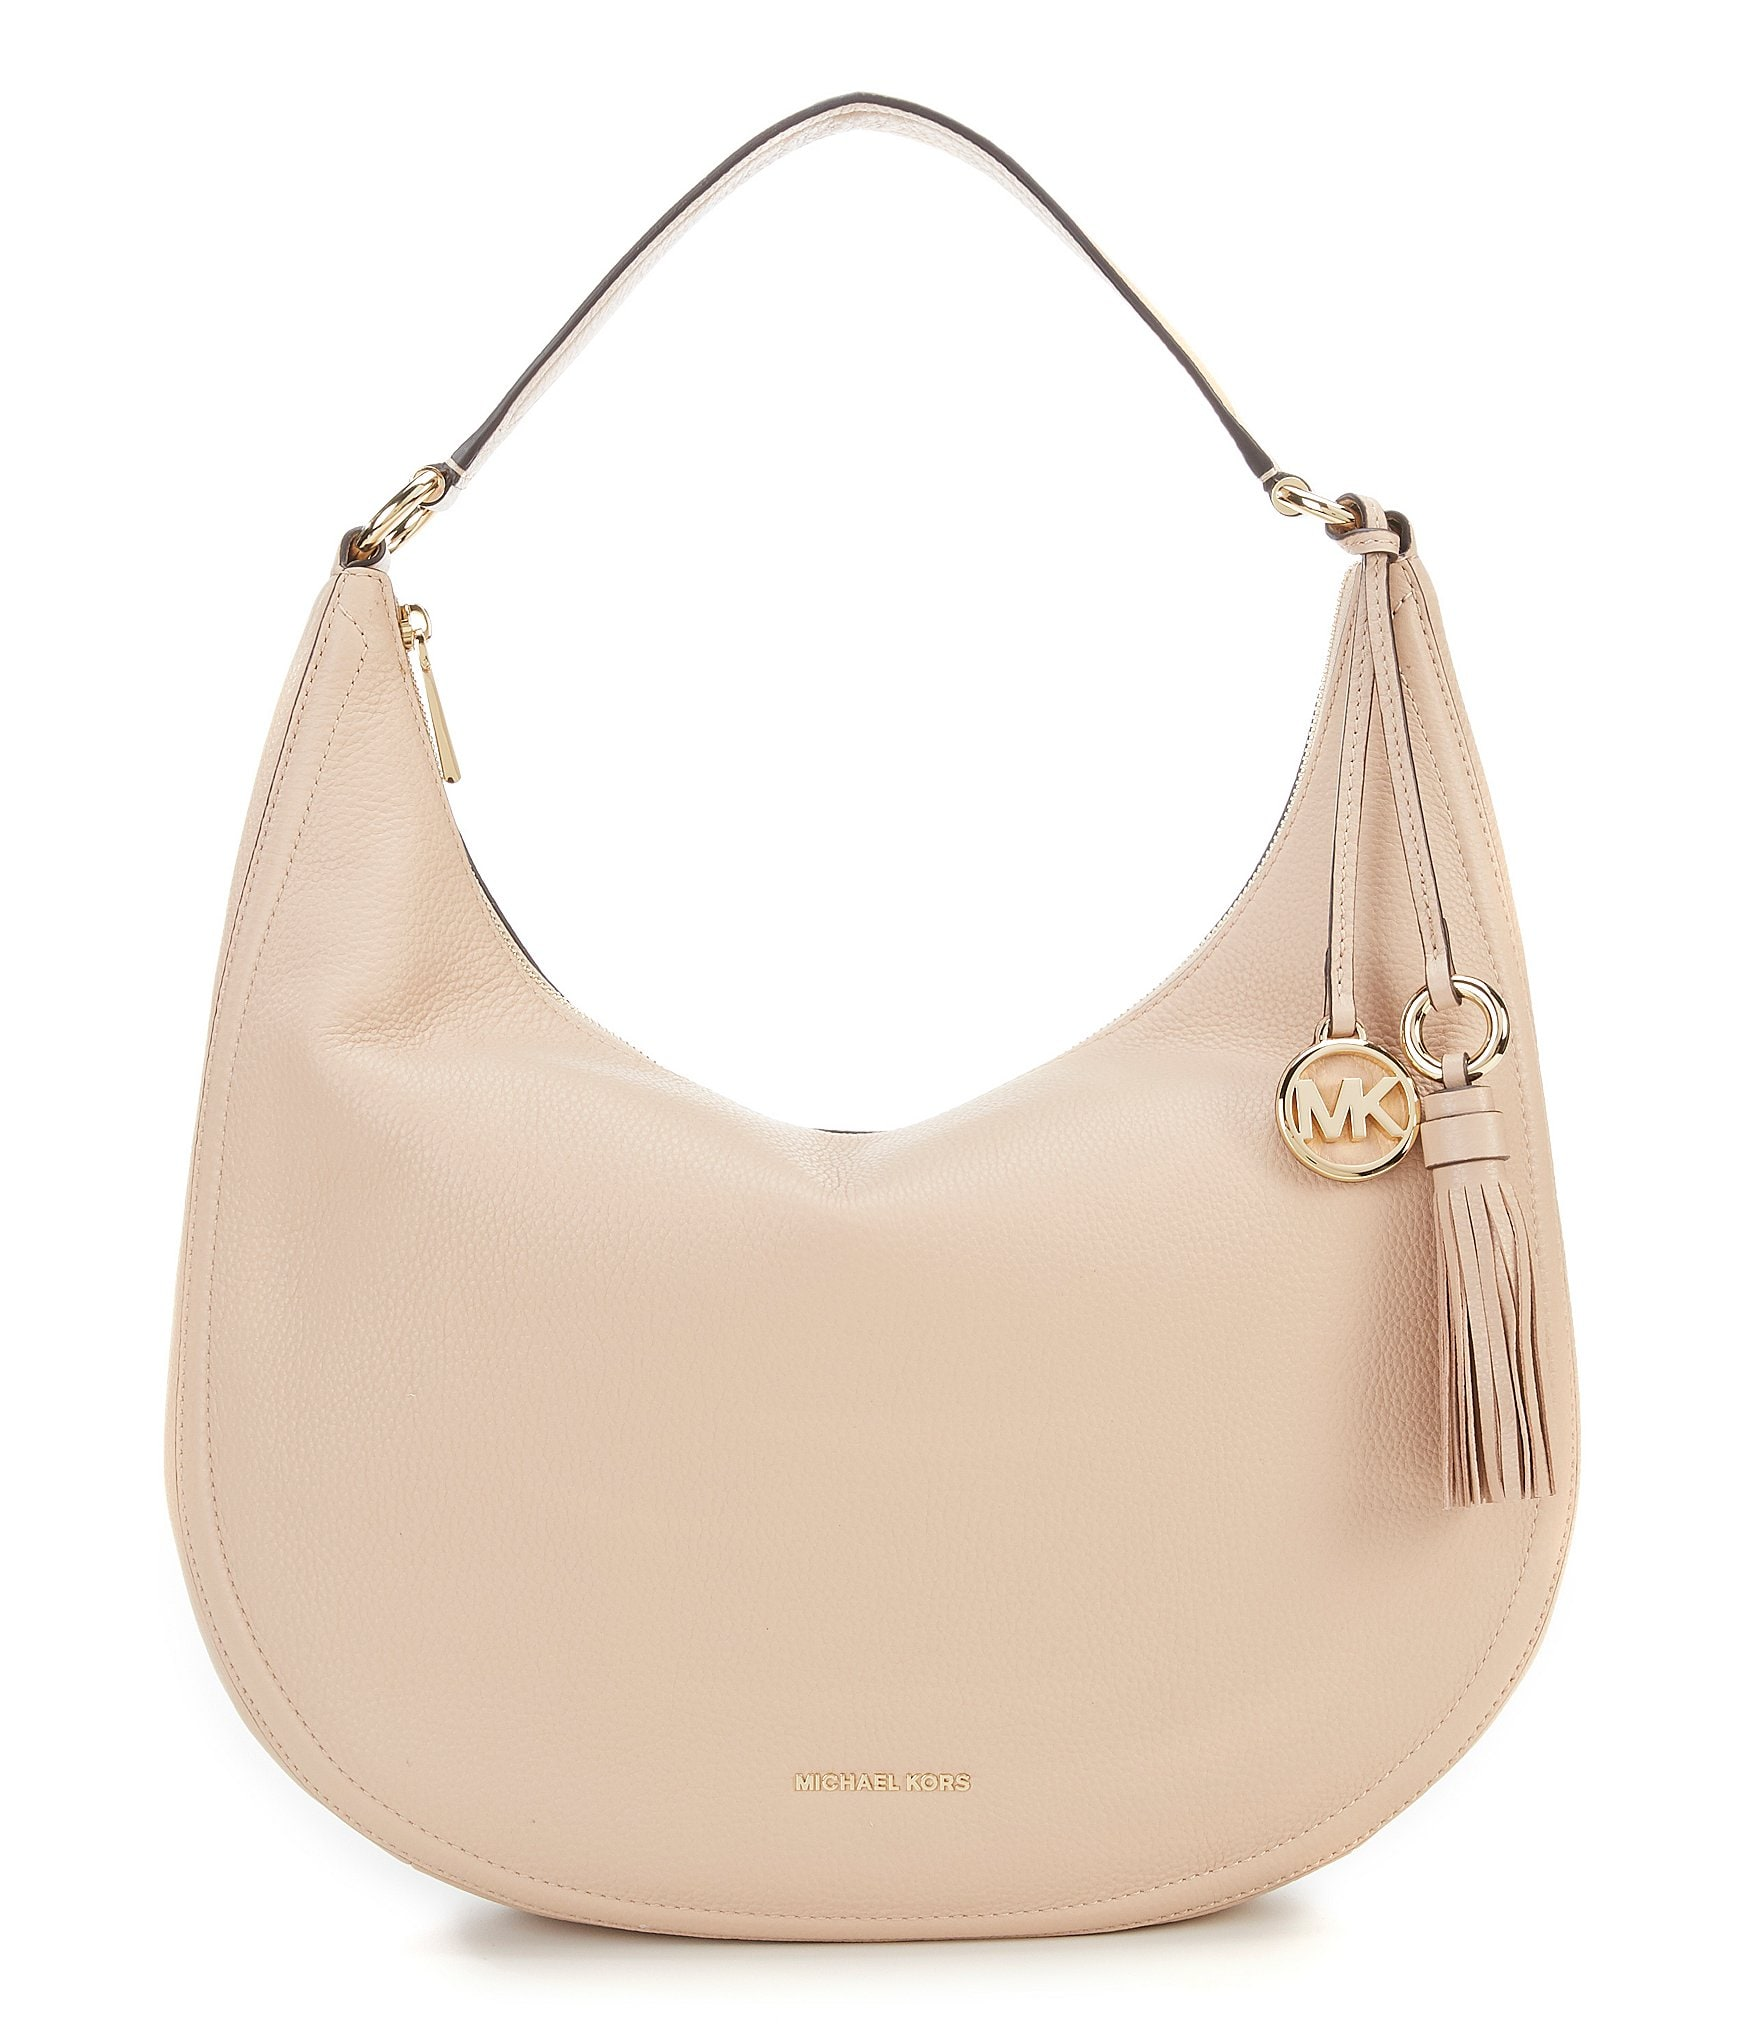 michael kors handbags outlet dillards tampa cheap mk handbags outlet